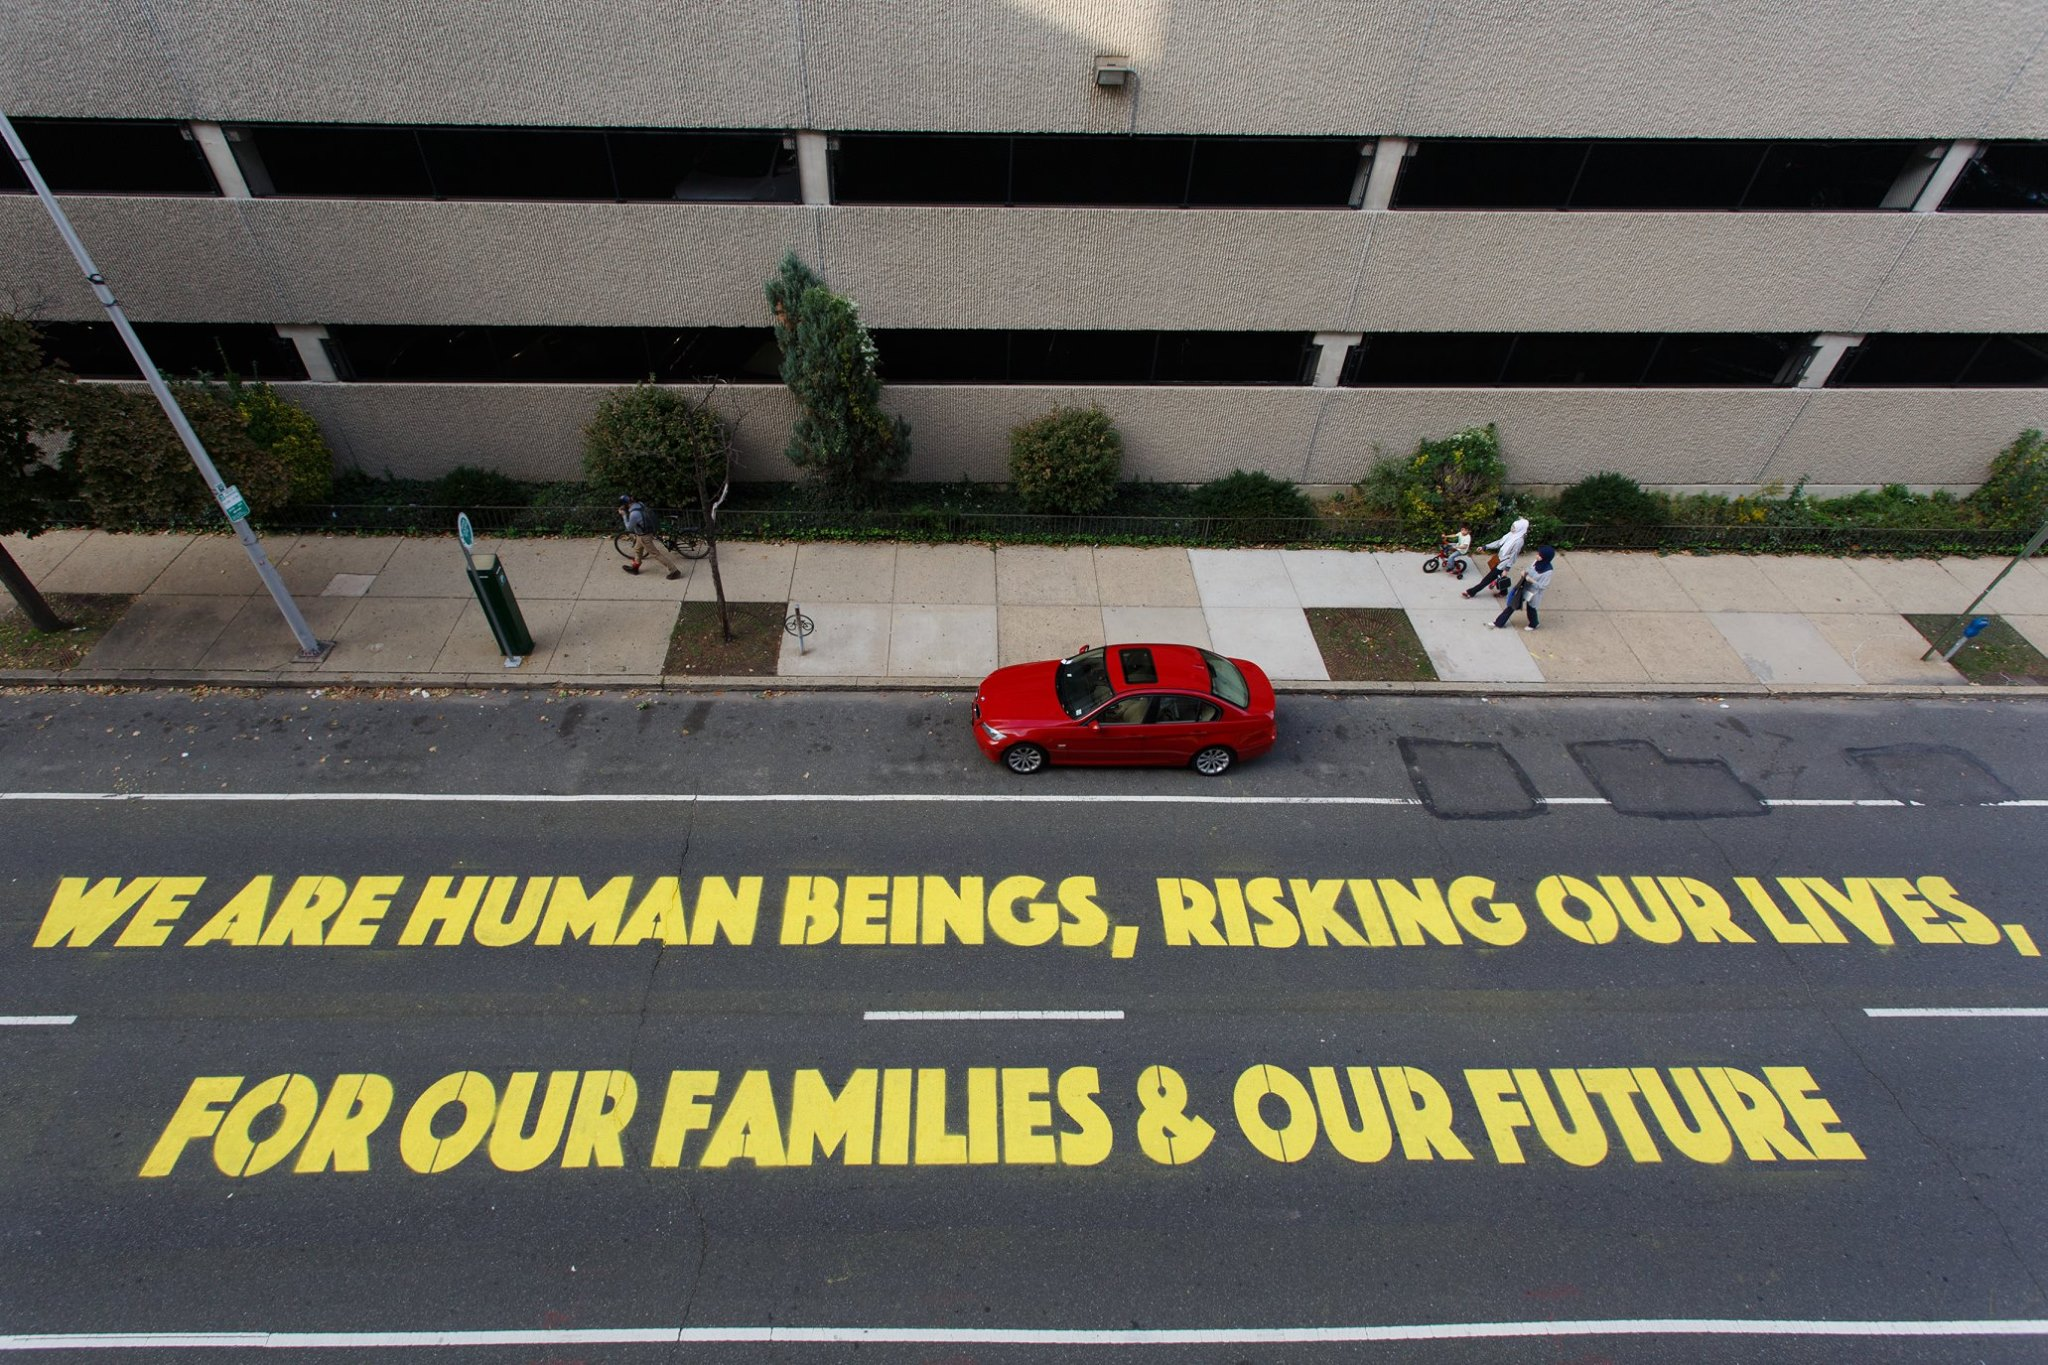 "Street banner by JUNTOS that reads ""We are human beings, risking our lives for our families and our futures""."